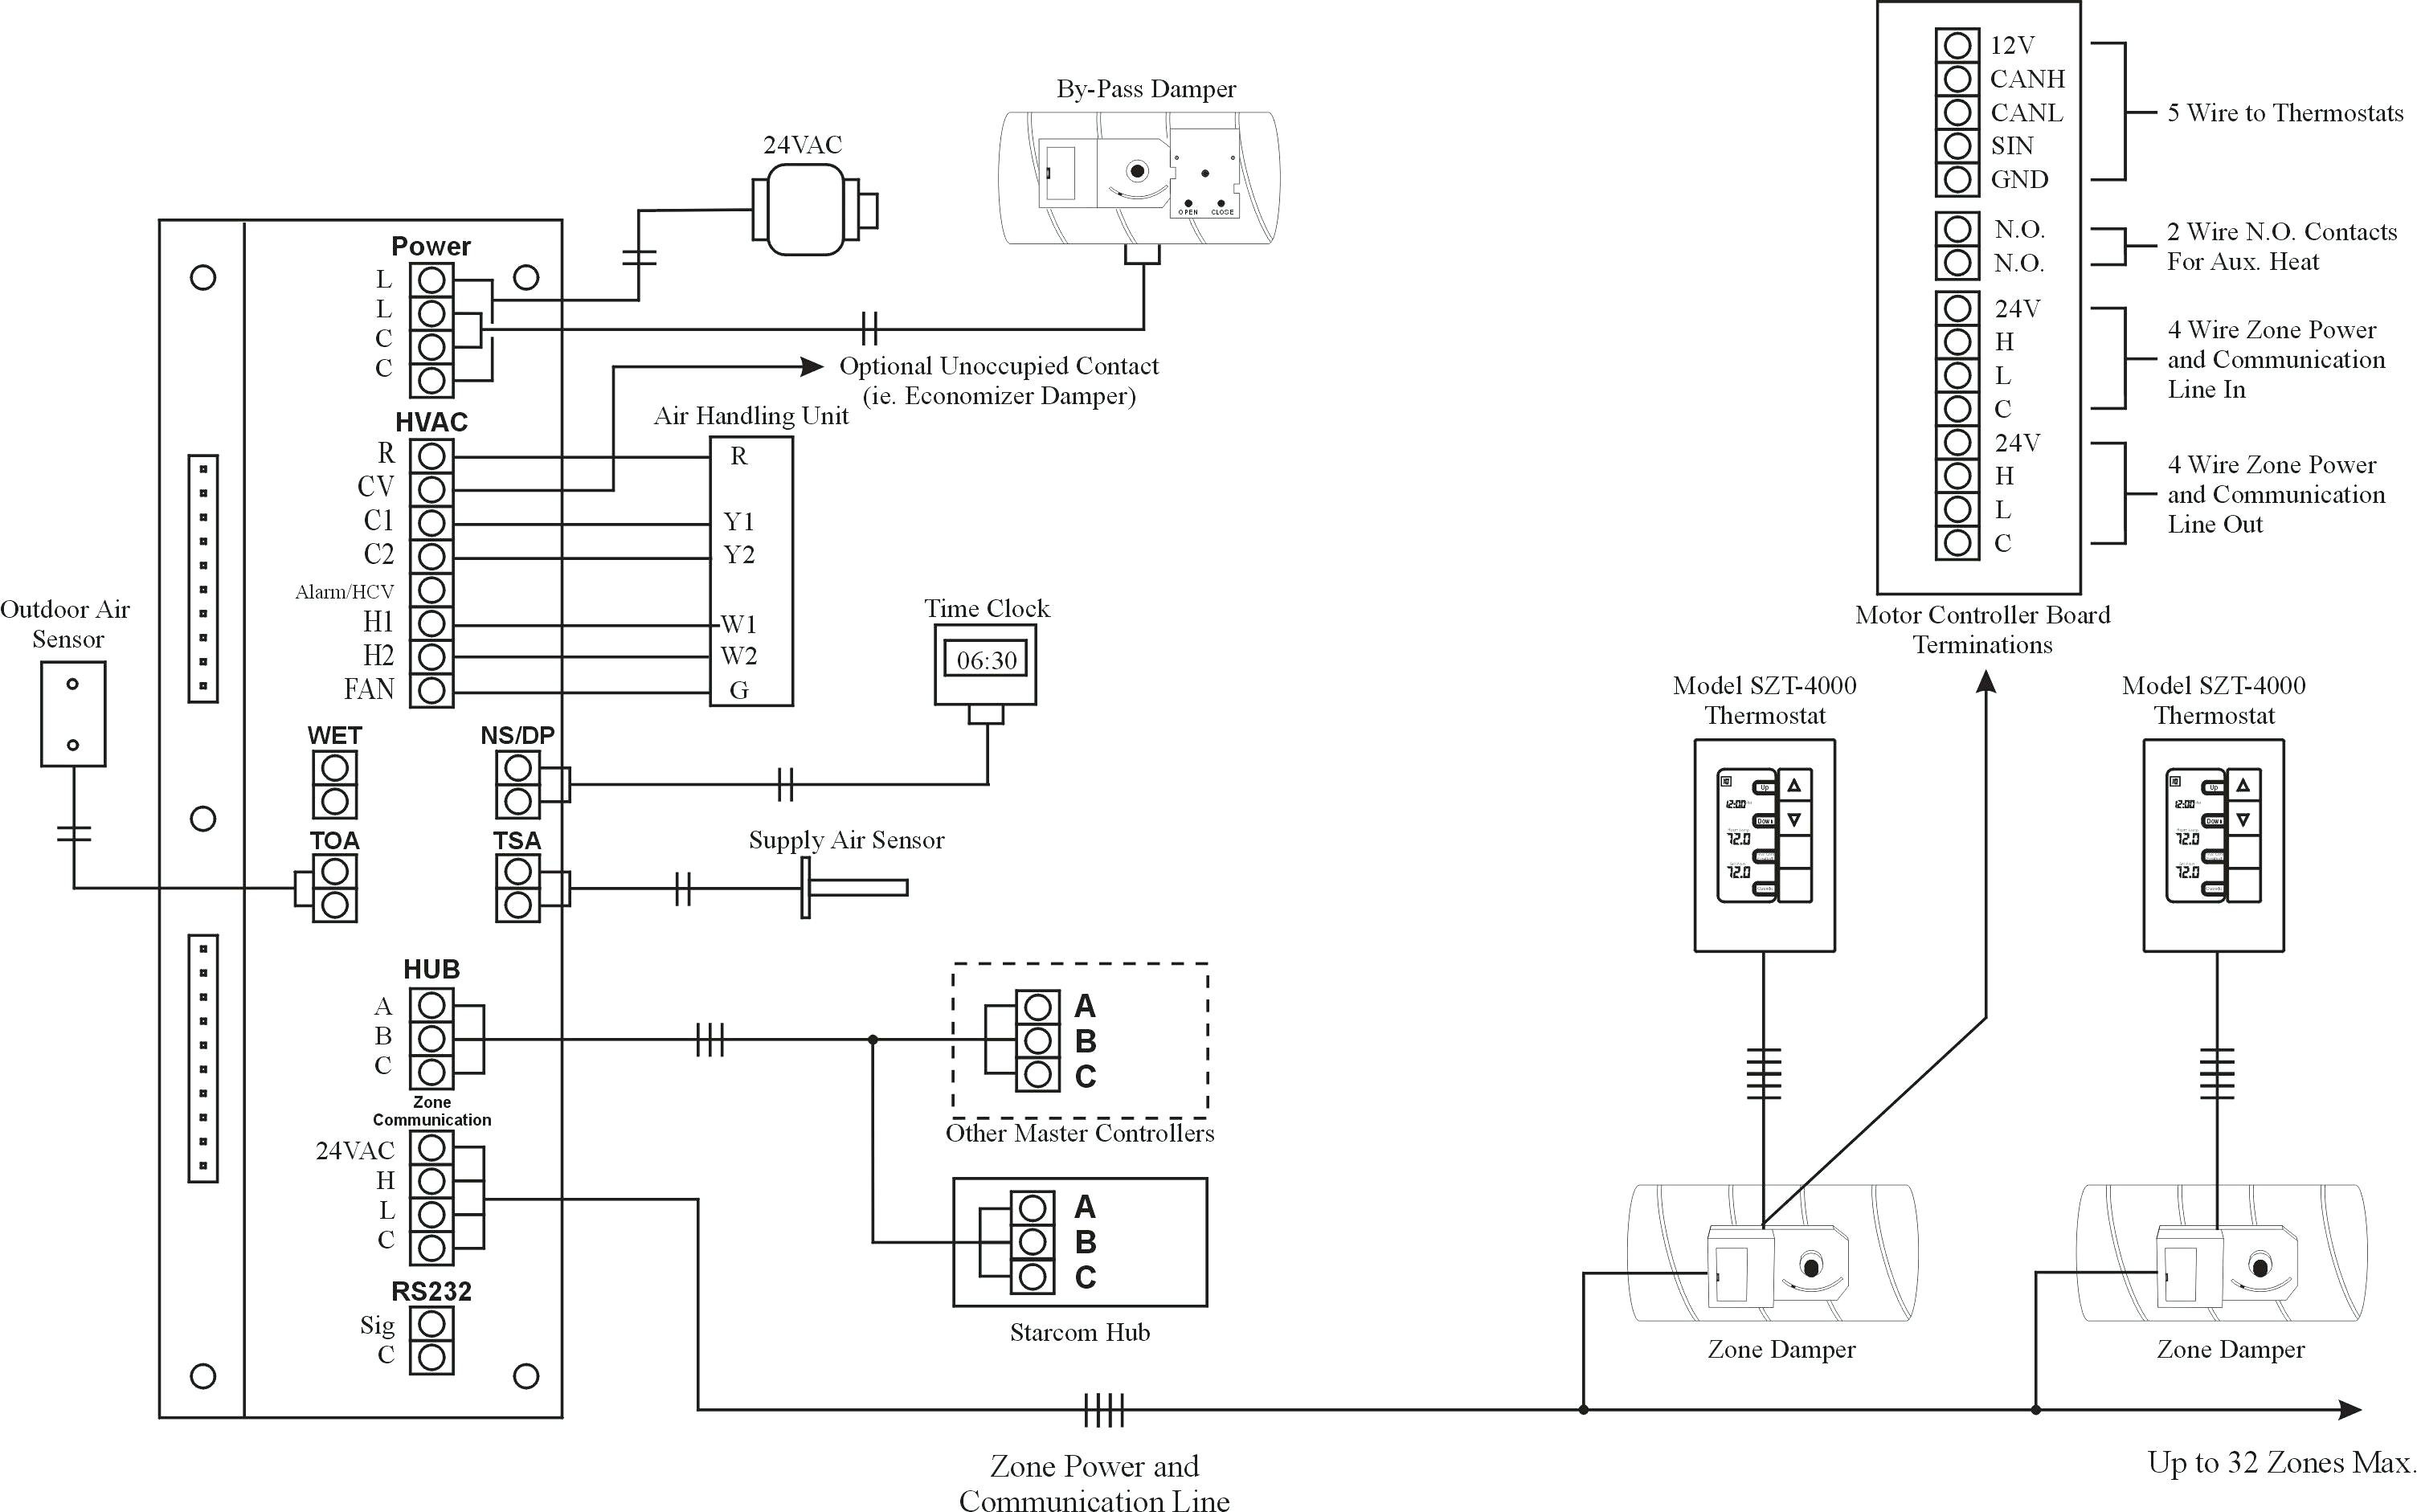 fire alarm wiring diagram schematic Collection-Wiring Diagram For Door Alarm Fresh Fire Alarm Wiring Diagram – Volovetsfo 14-t